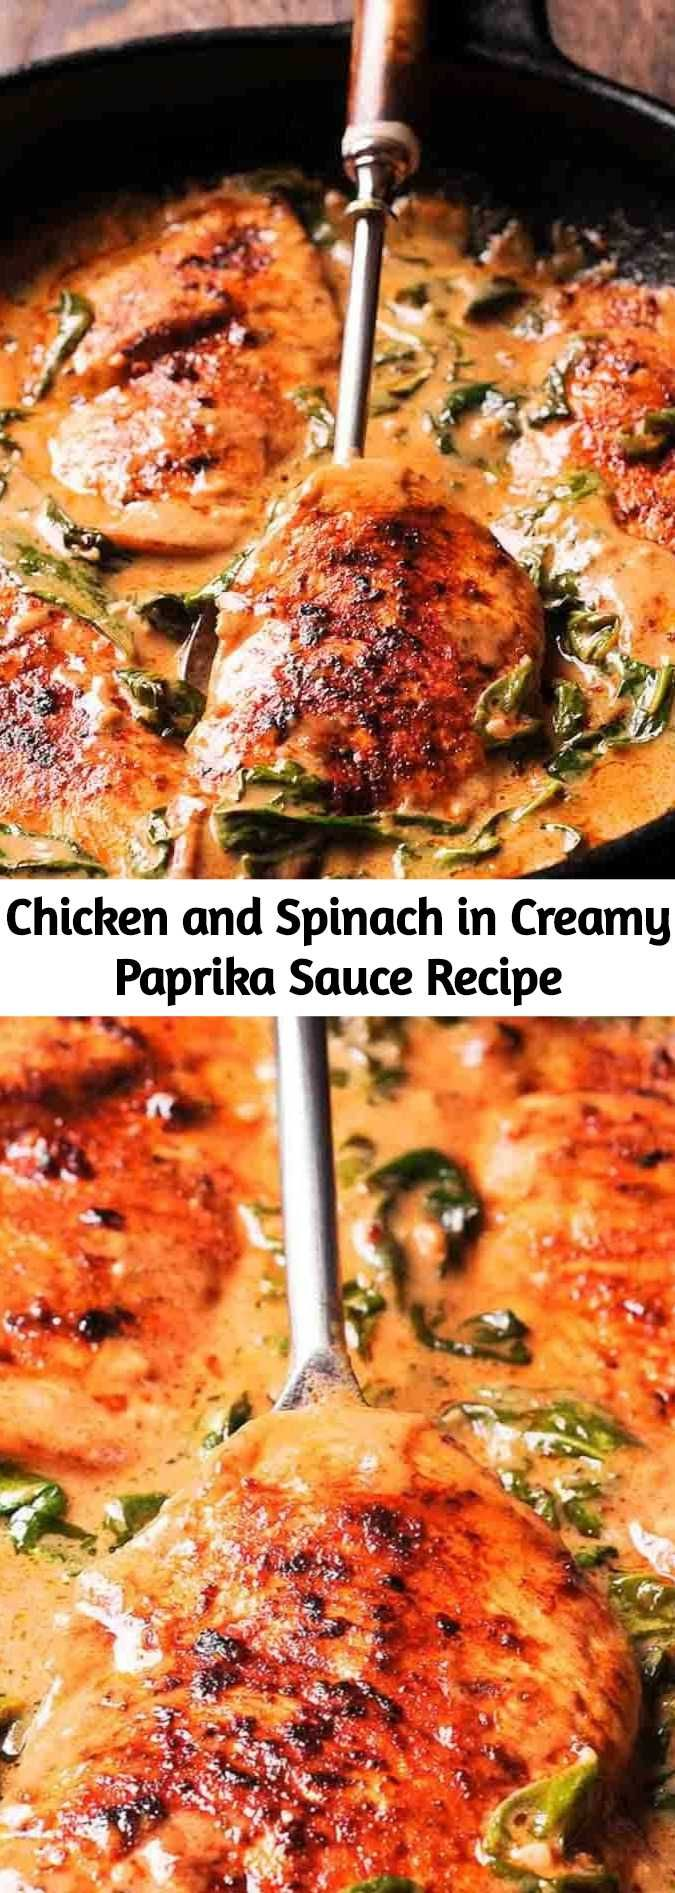 Chicken and Spinach in Creamy Paprika Sauce is an amazing one-pan dish with an a…